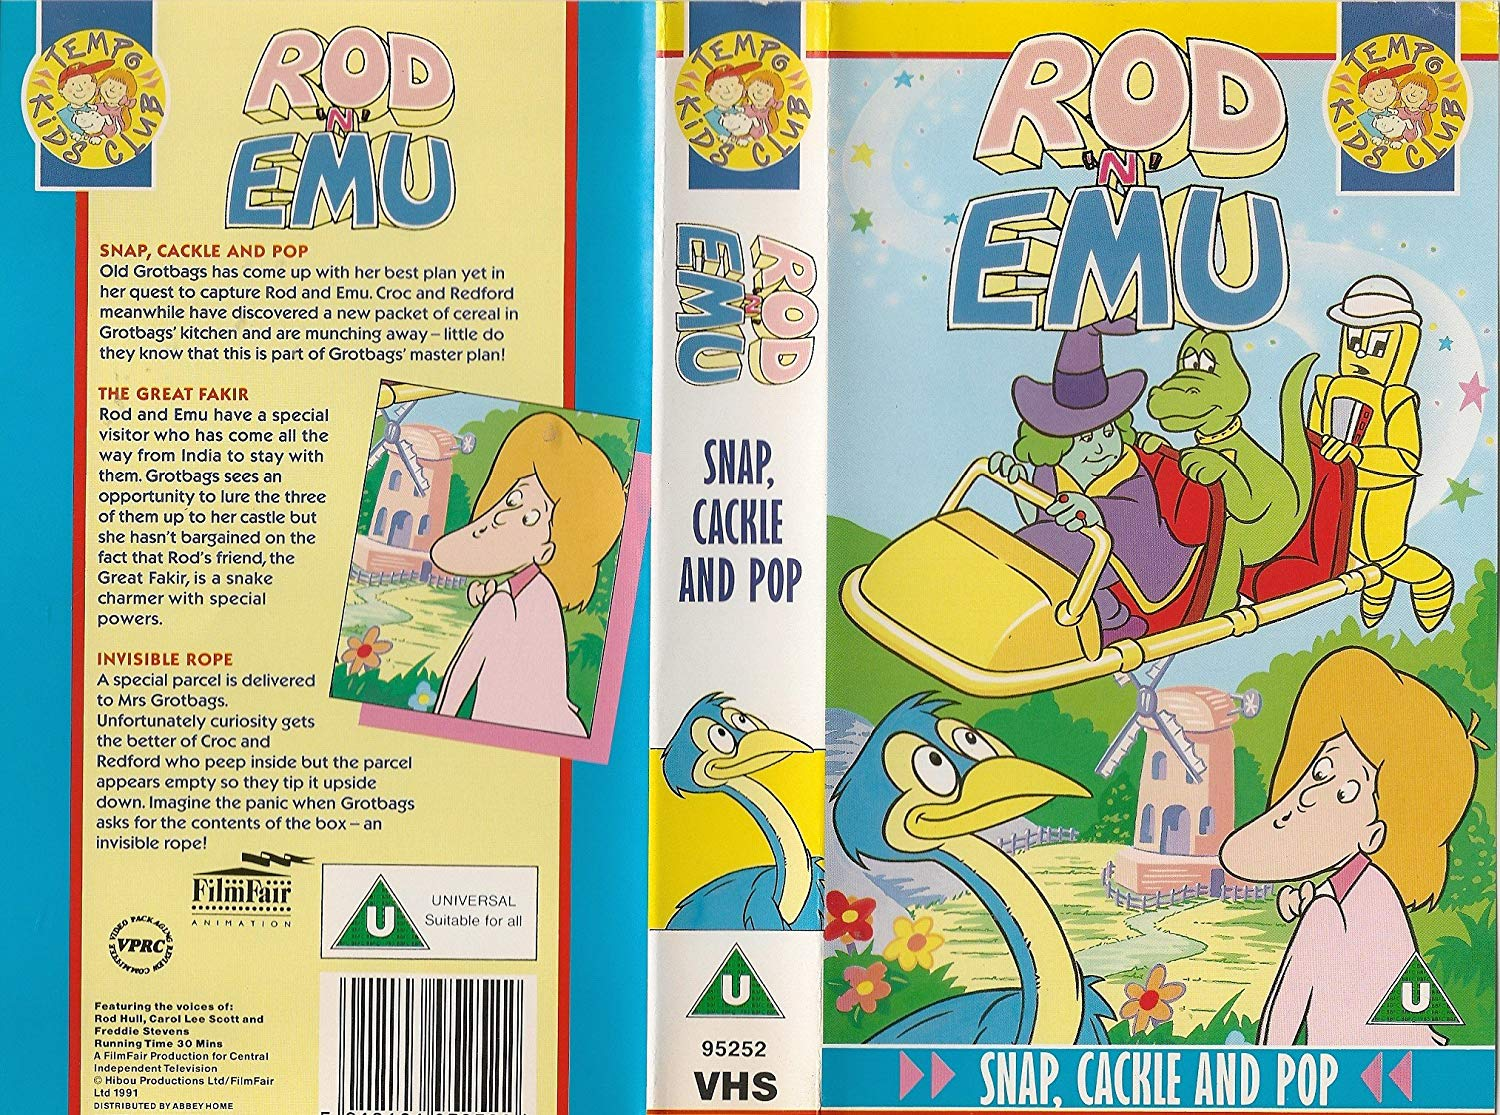 Rod 'n' Emu - Snap Cackle and Pop